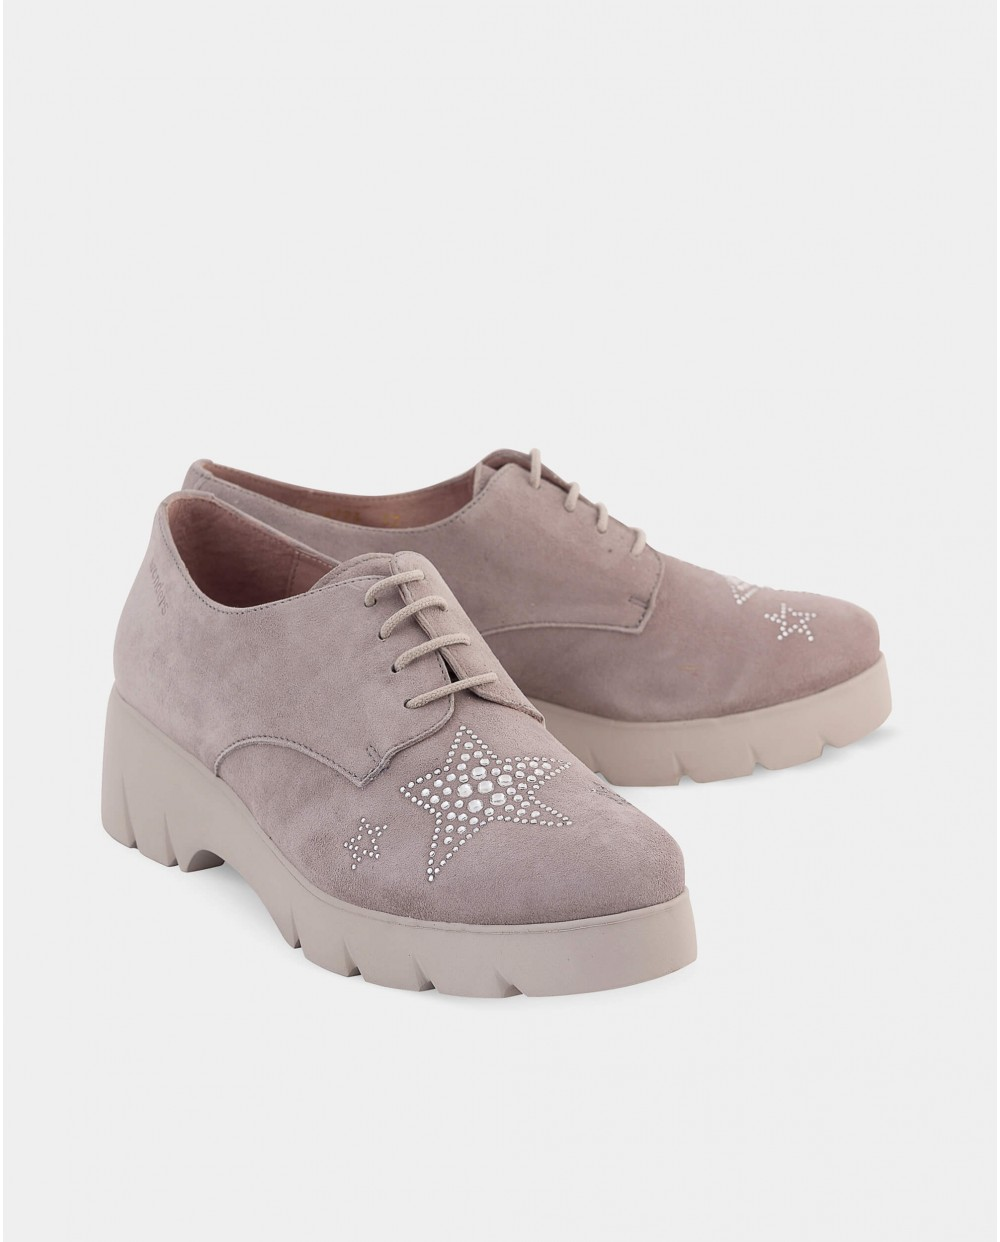 Wonders-Outlet-Suede leather Blucher with rhinestone star detail